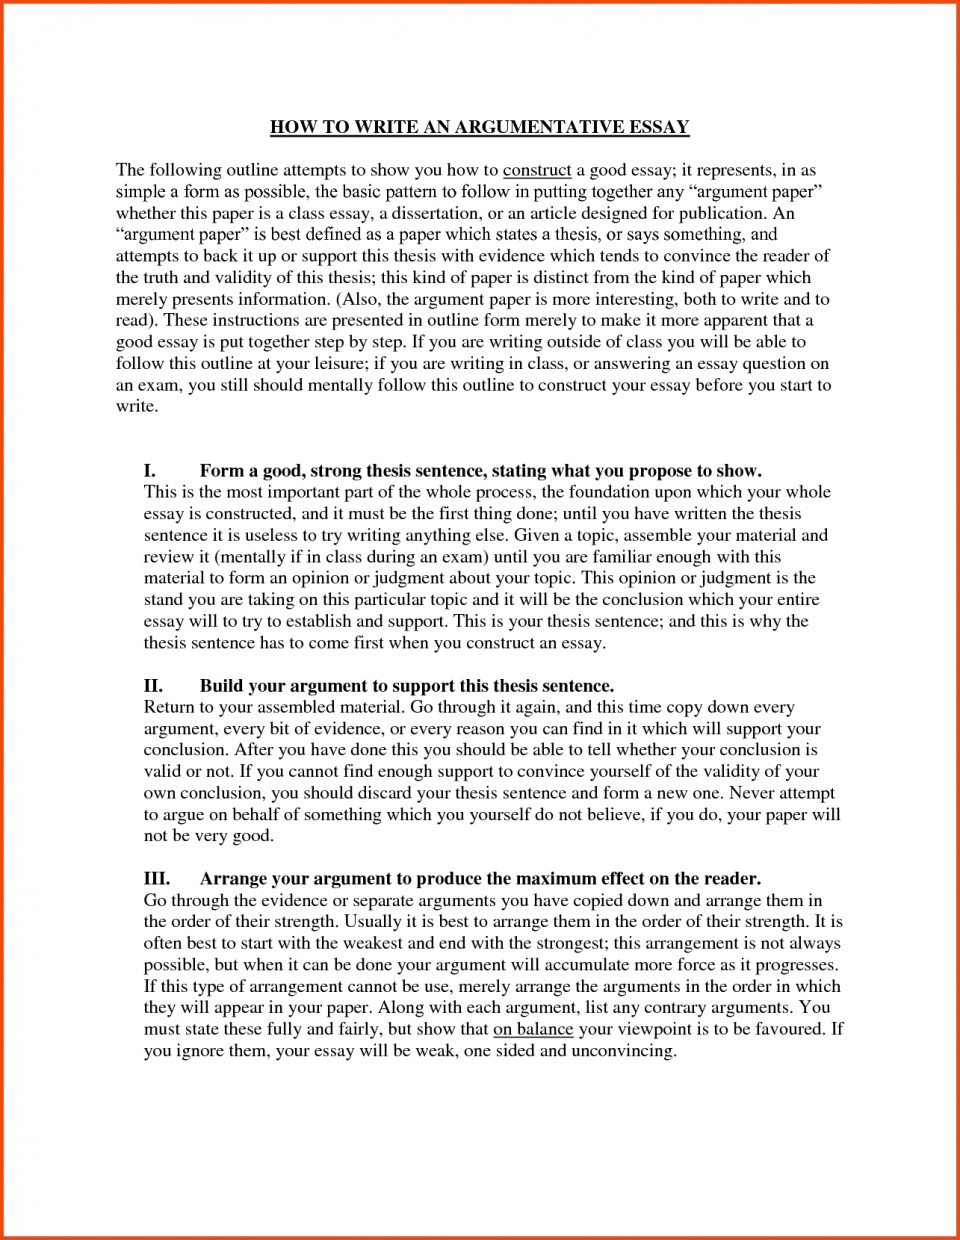 005 Essay Example How To Start An Brilliant Ideas Of Good Ways About Yourself Dissertation Nice Amazing Bad With A Question Definition 960